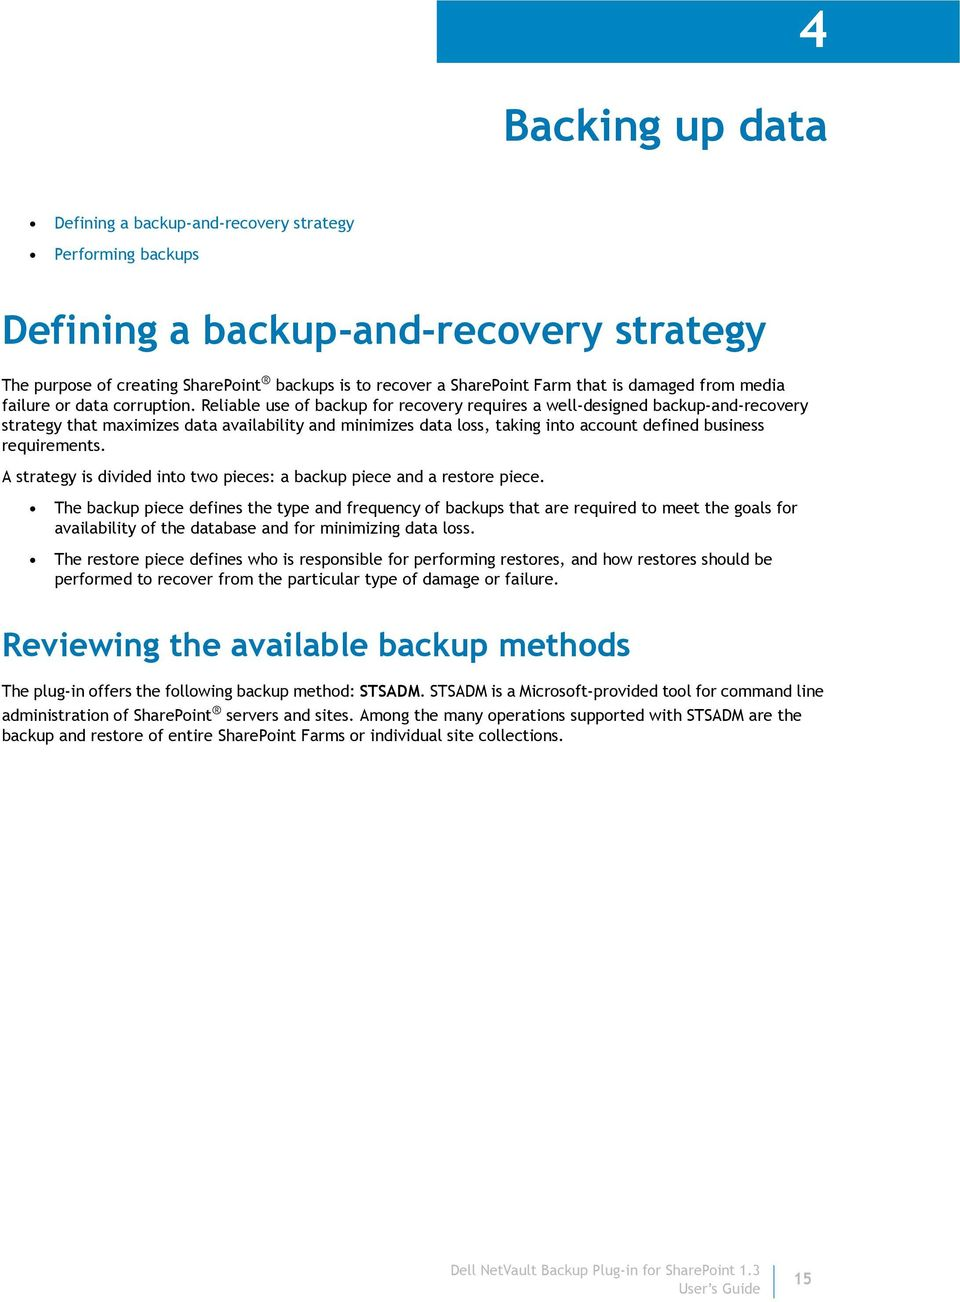 Reliable use of backup for recovery requires a well-designed backup-and-recovery strategy that maximizes data availability and minimizes data loss, taking into account defined business requirements.